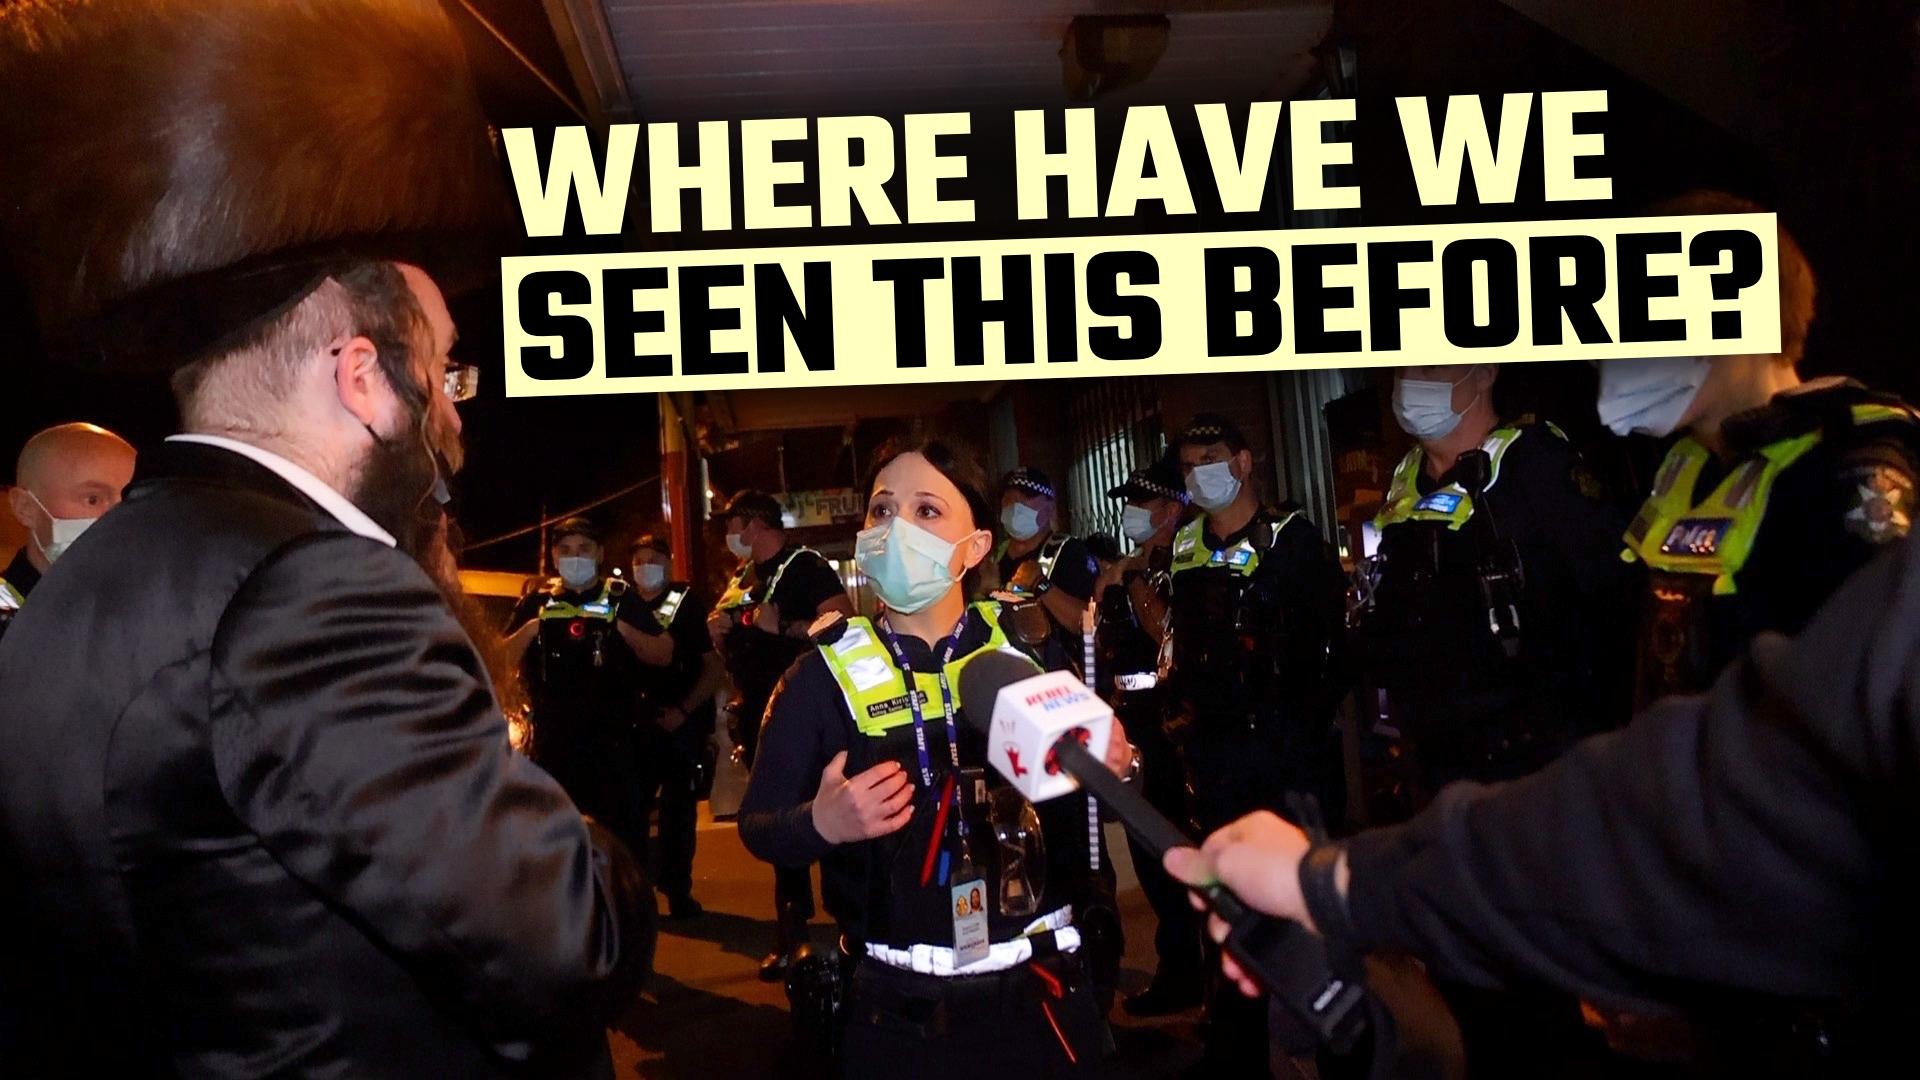 Loving community TARGETED by police for daring to celebrate their faith